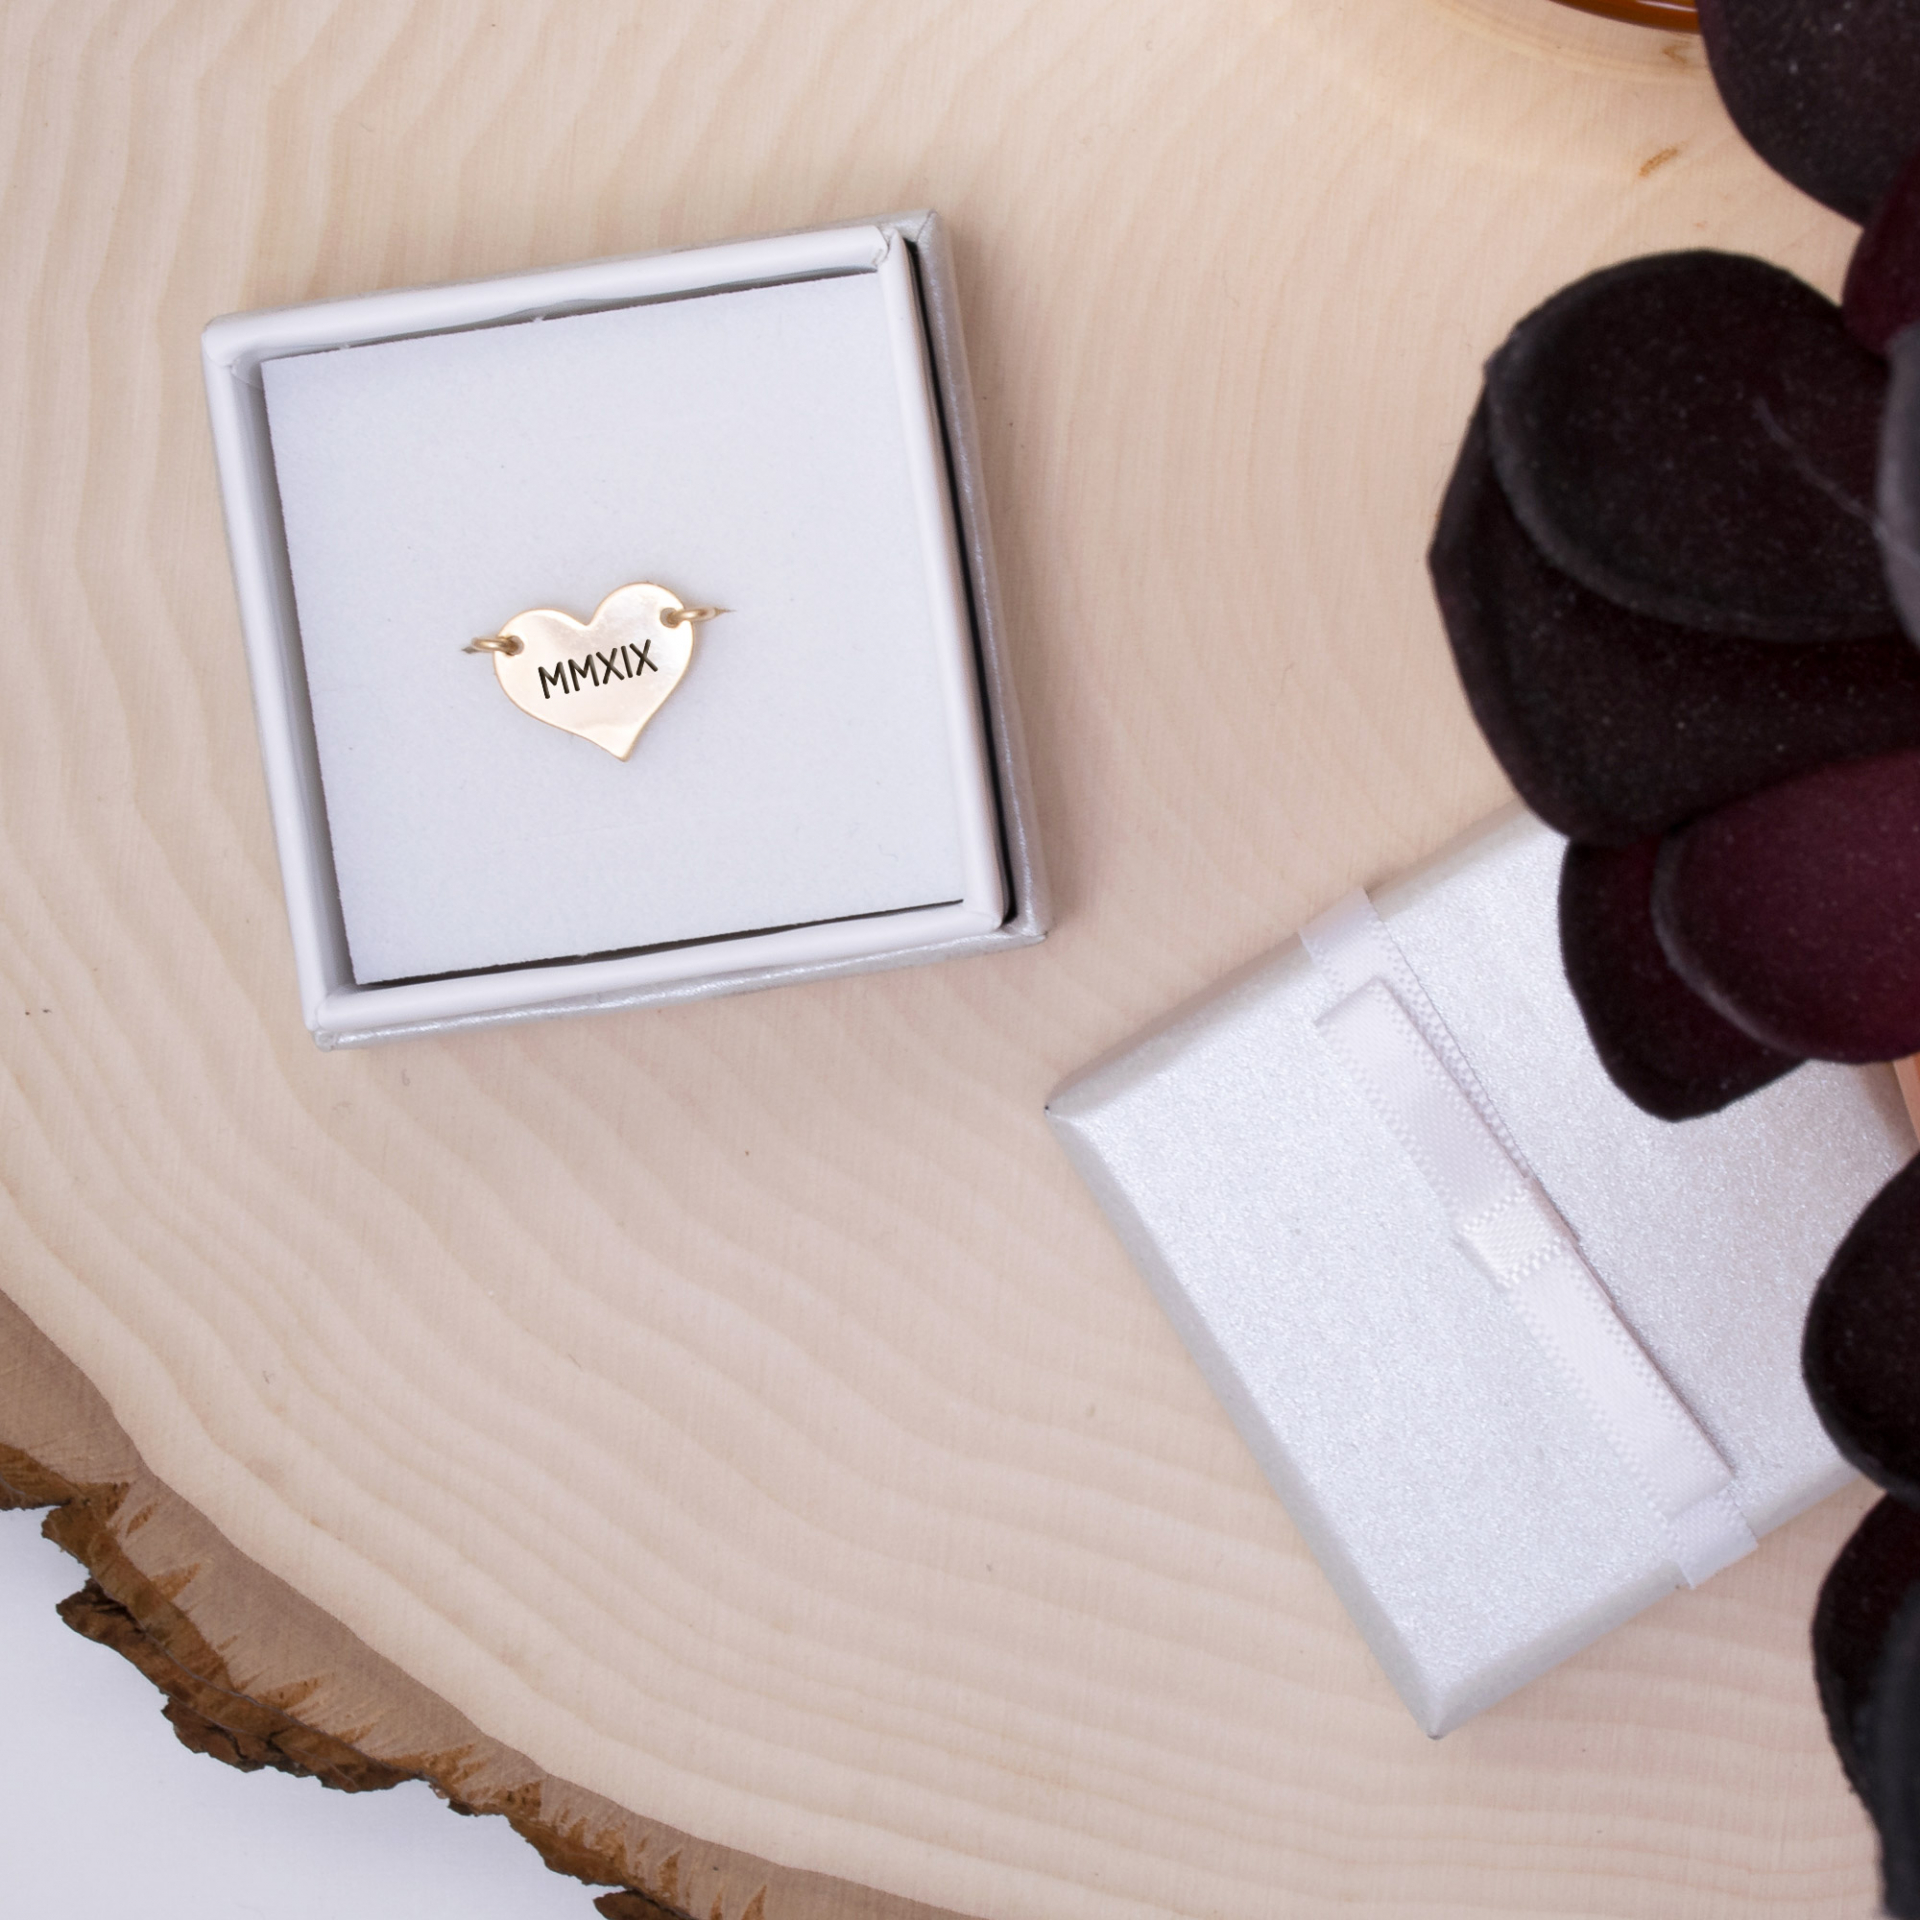 2019-roman-numeral-heart-wire-ring-gold-in-box-2